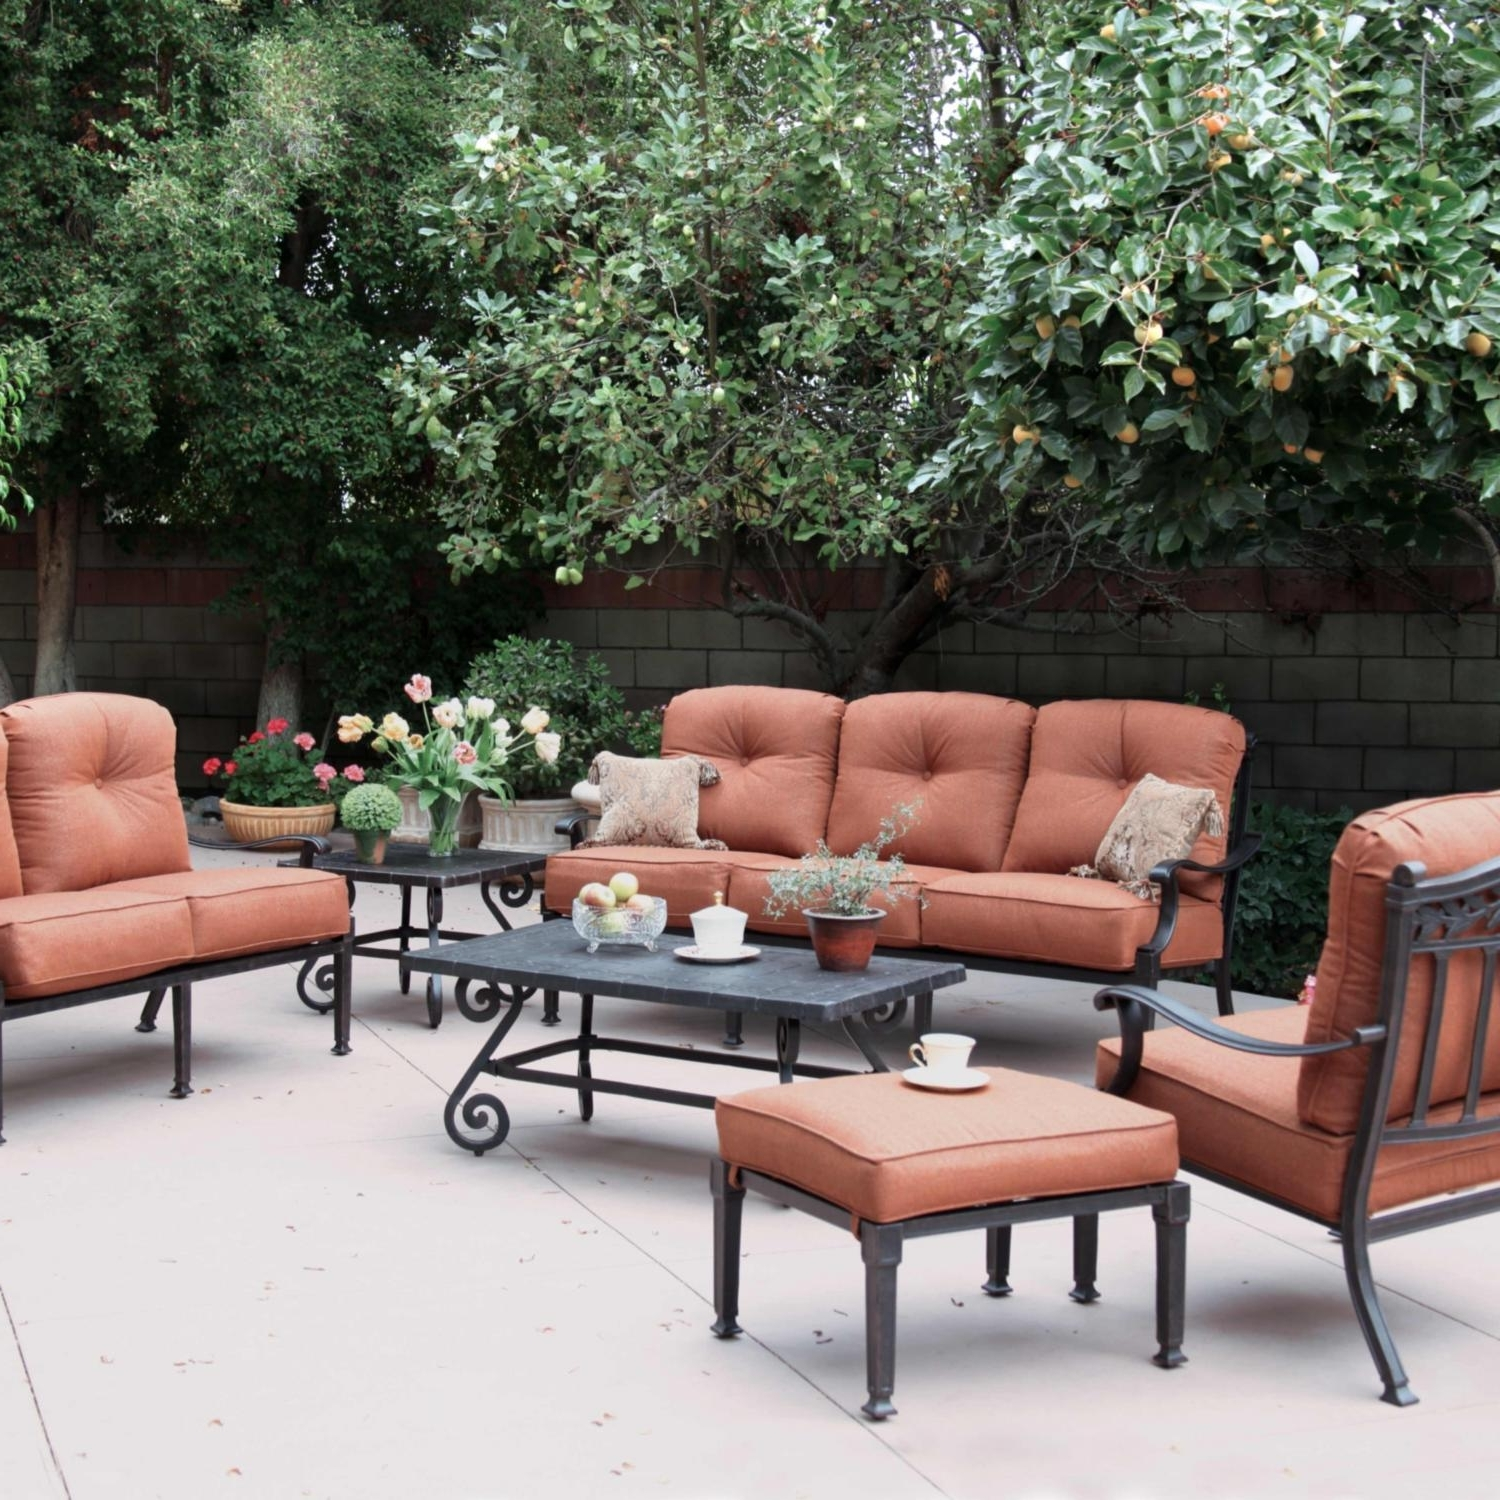 Patio Conversation Sets For Small Spaces Intended For Favorite Metal Patio Conversation Sets For Small Spaces Cast Aluminum — The (View 10 of 15)